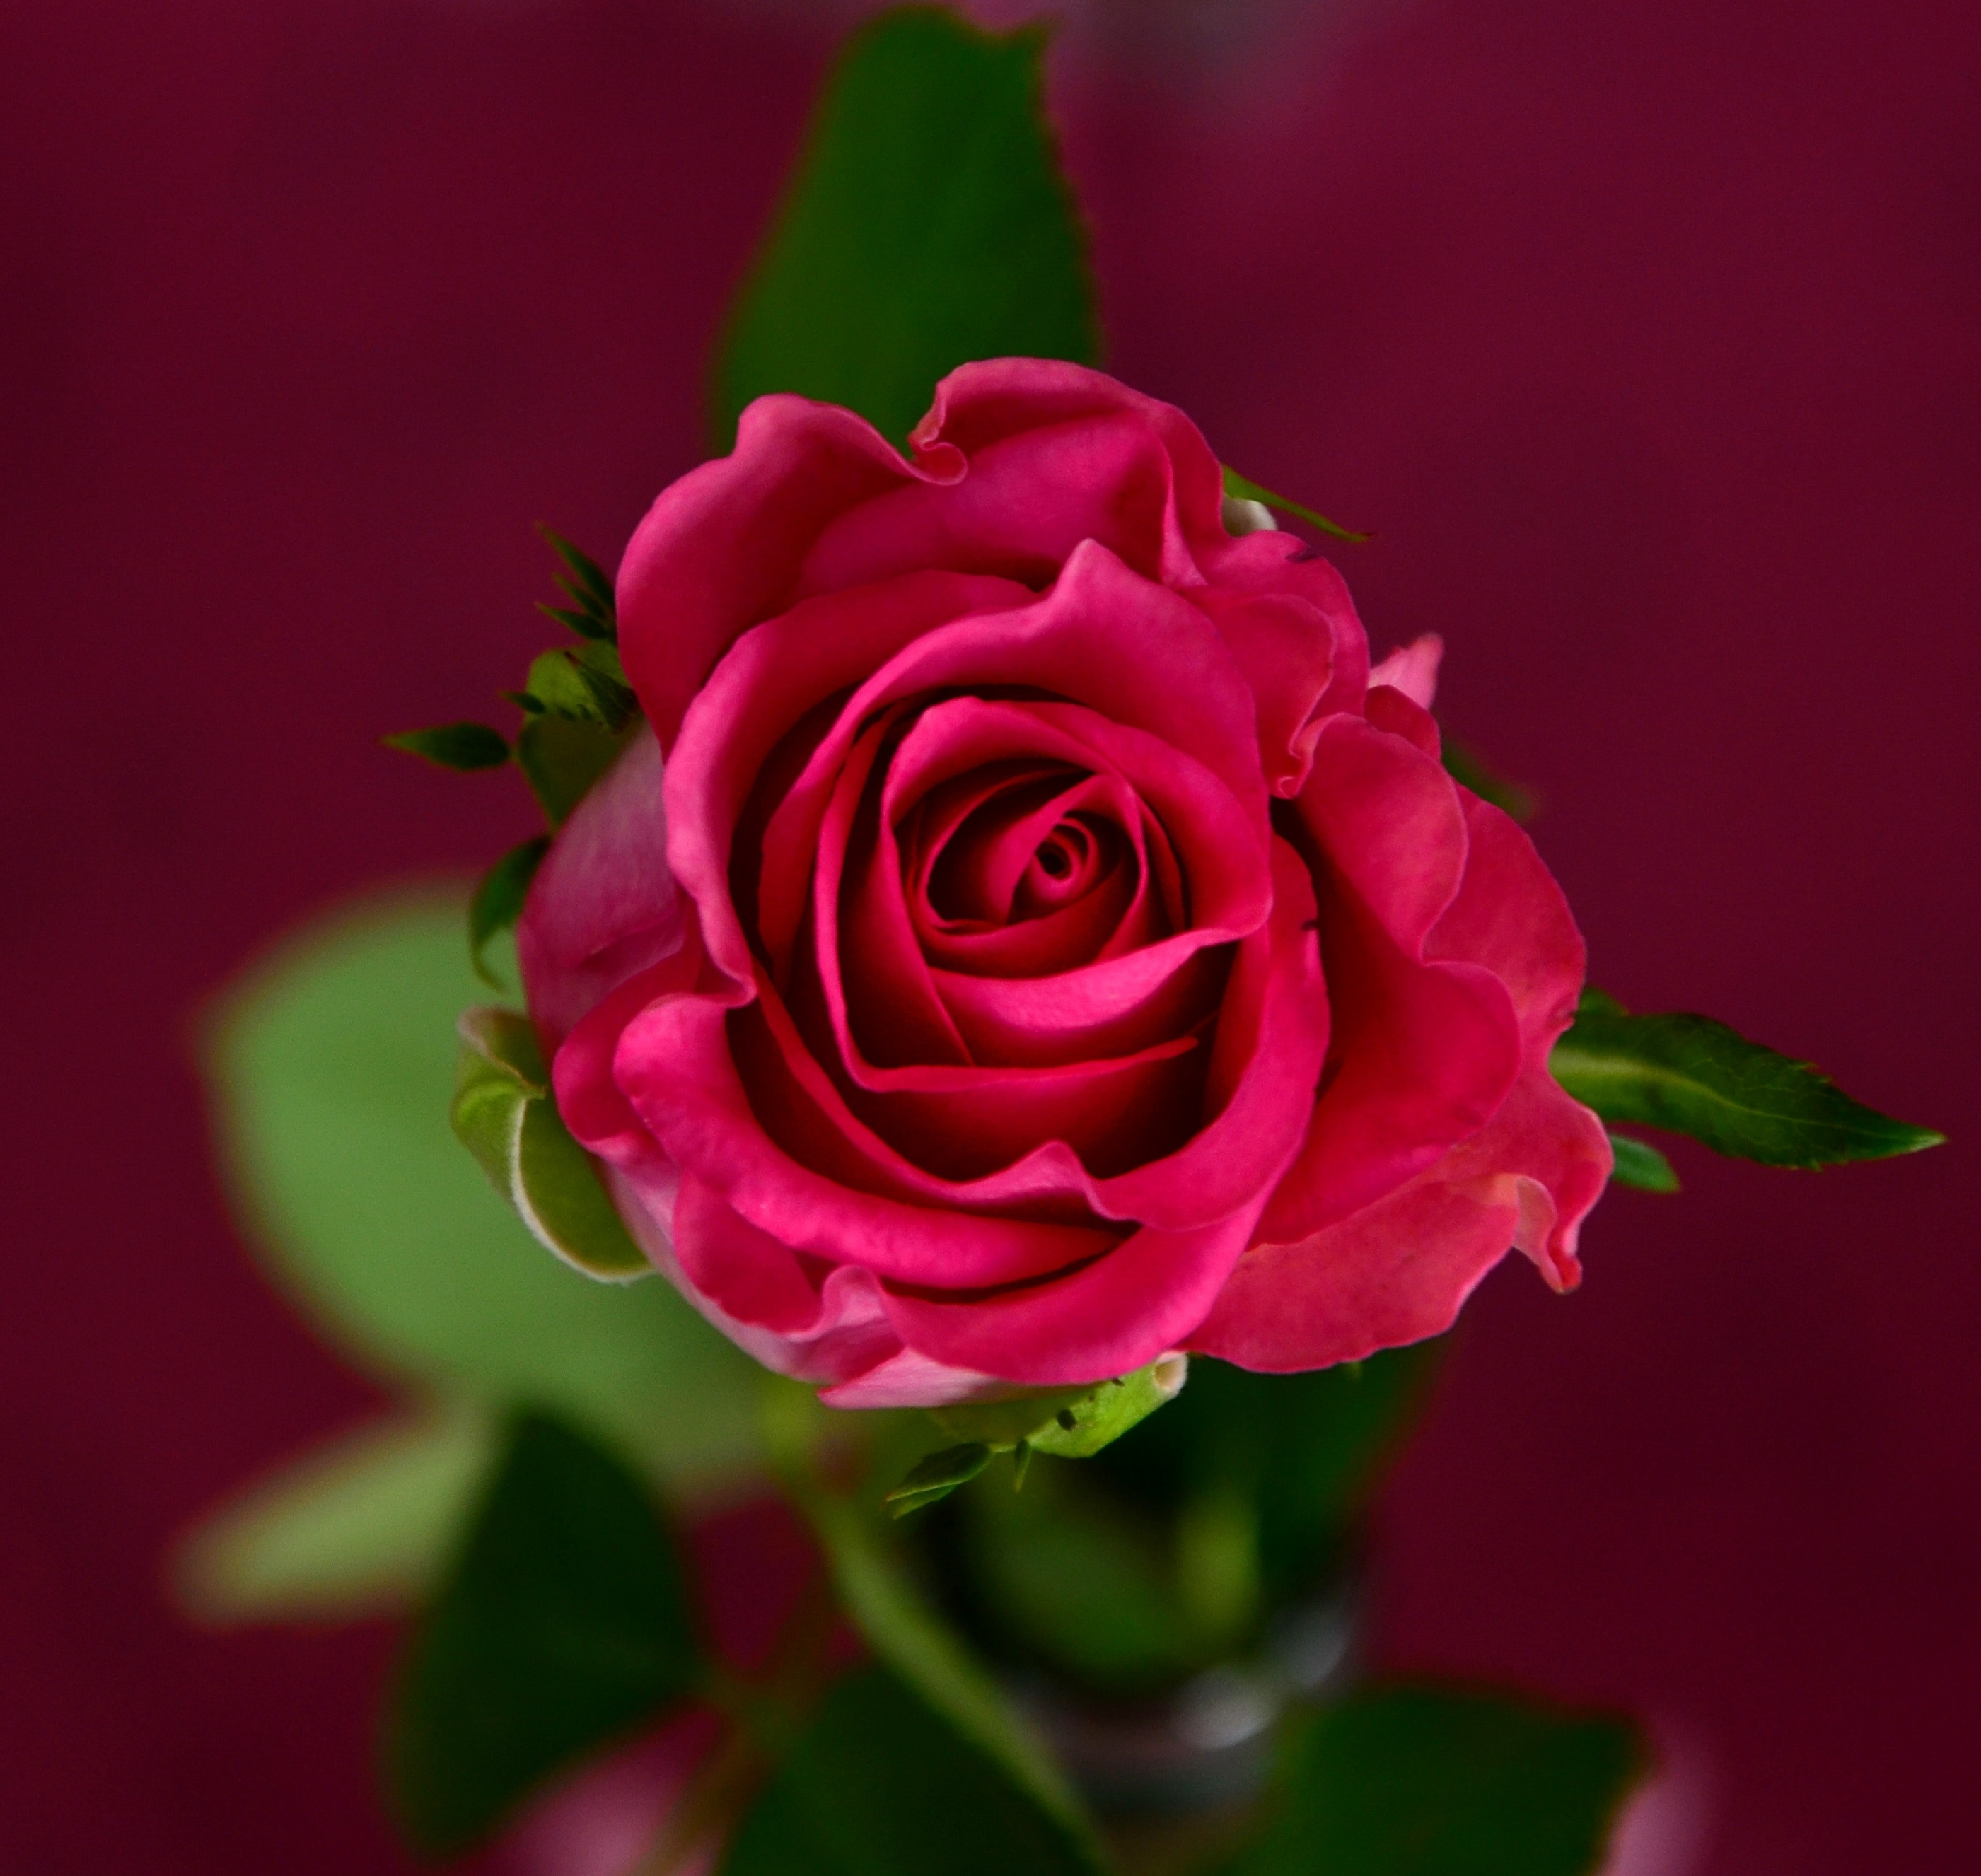 Rose images pexels free stock photos here you can find the most beautiful pictures of rose flowers all rose images and rose flower images are free to download and can be used commercially izmirmasajfo